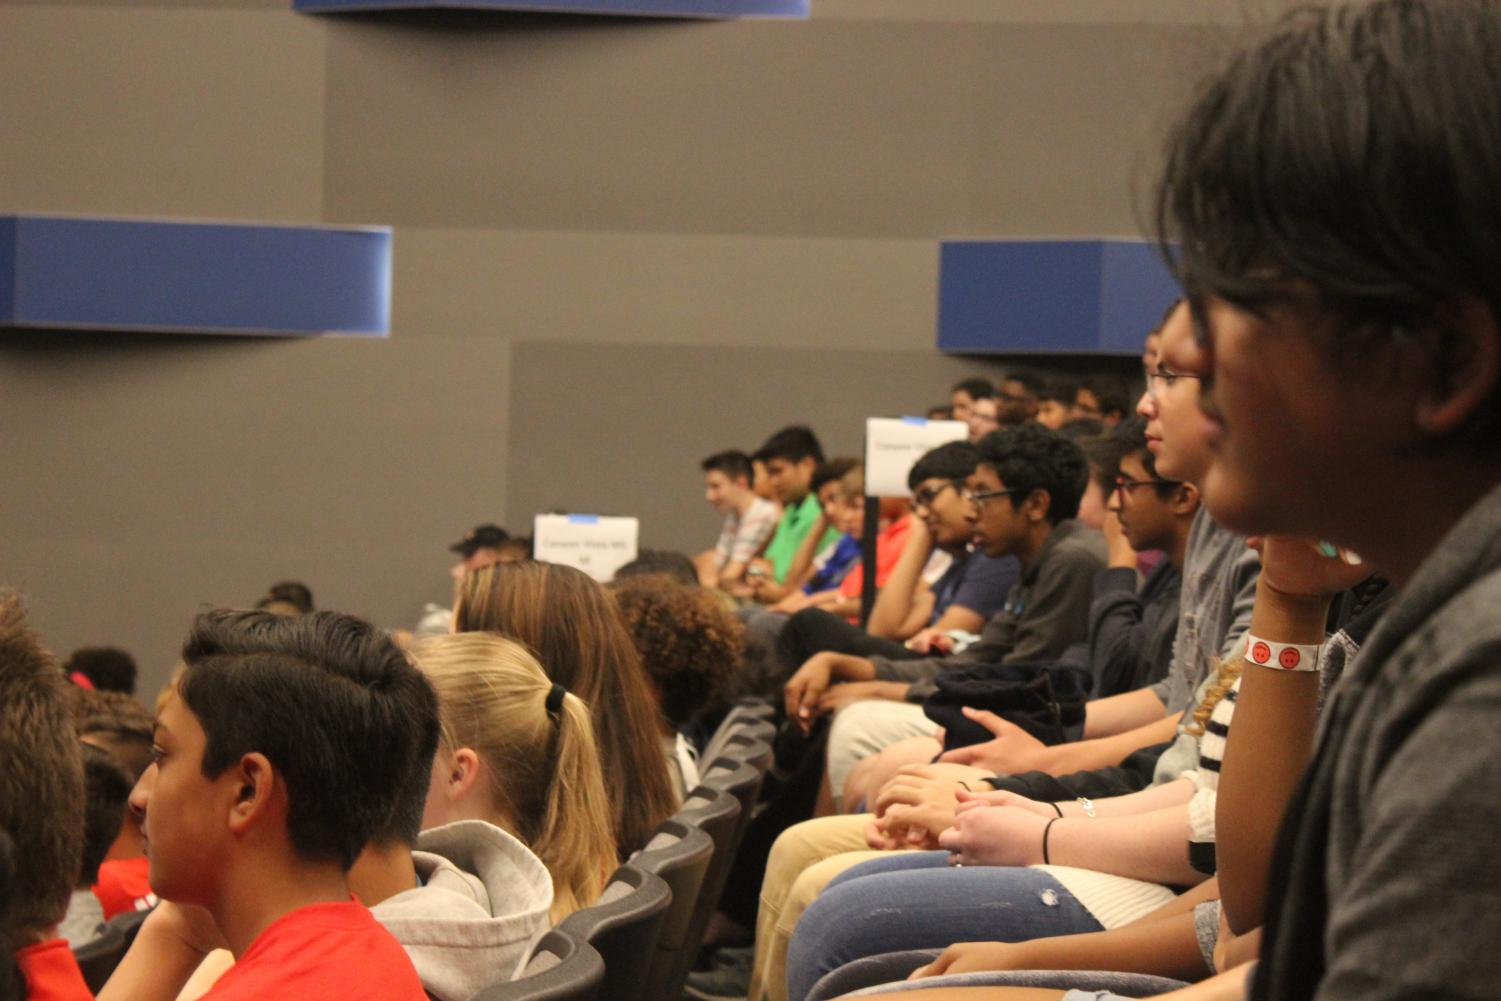 Another+look+into+rows+of+the+students+eagerly+listening